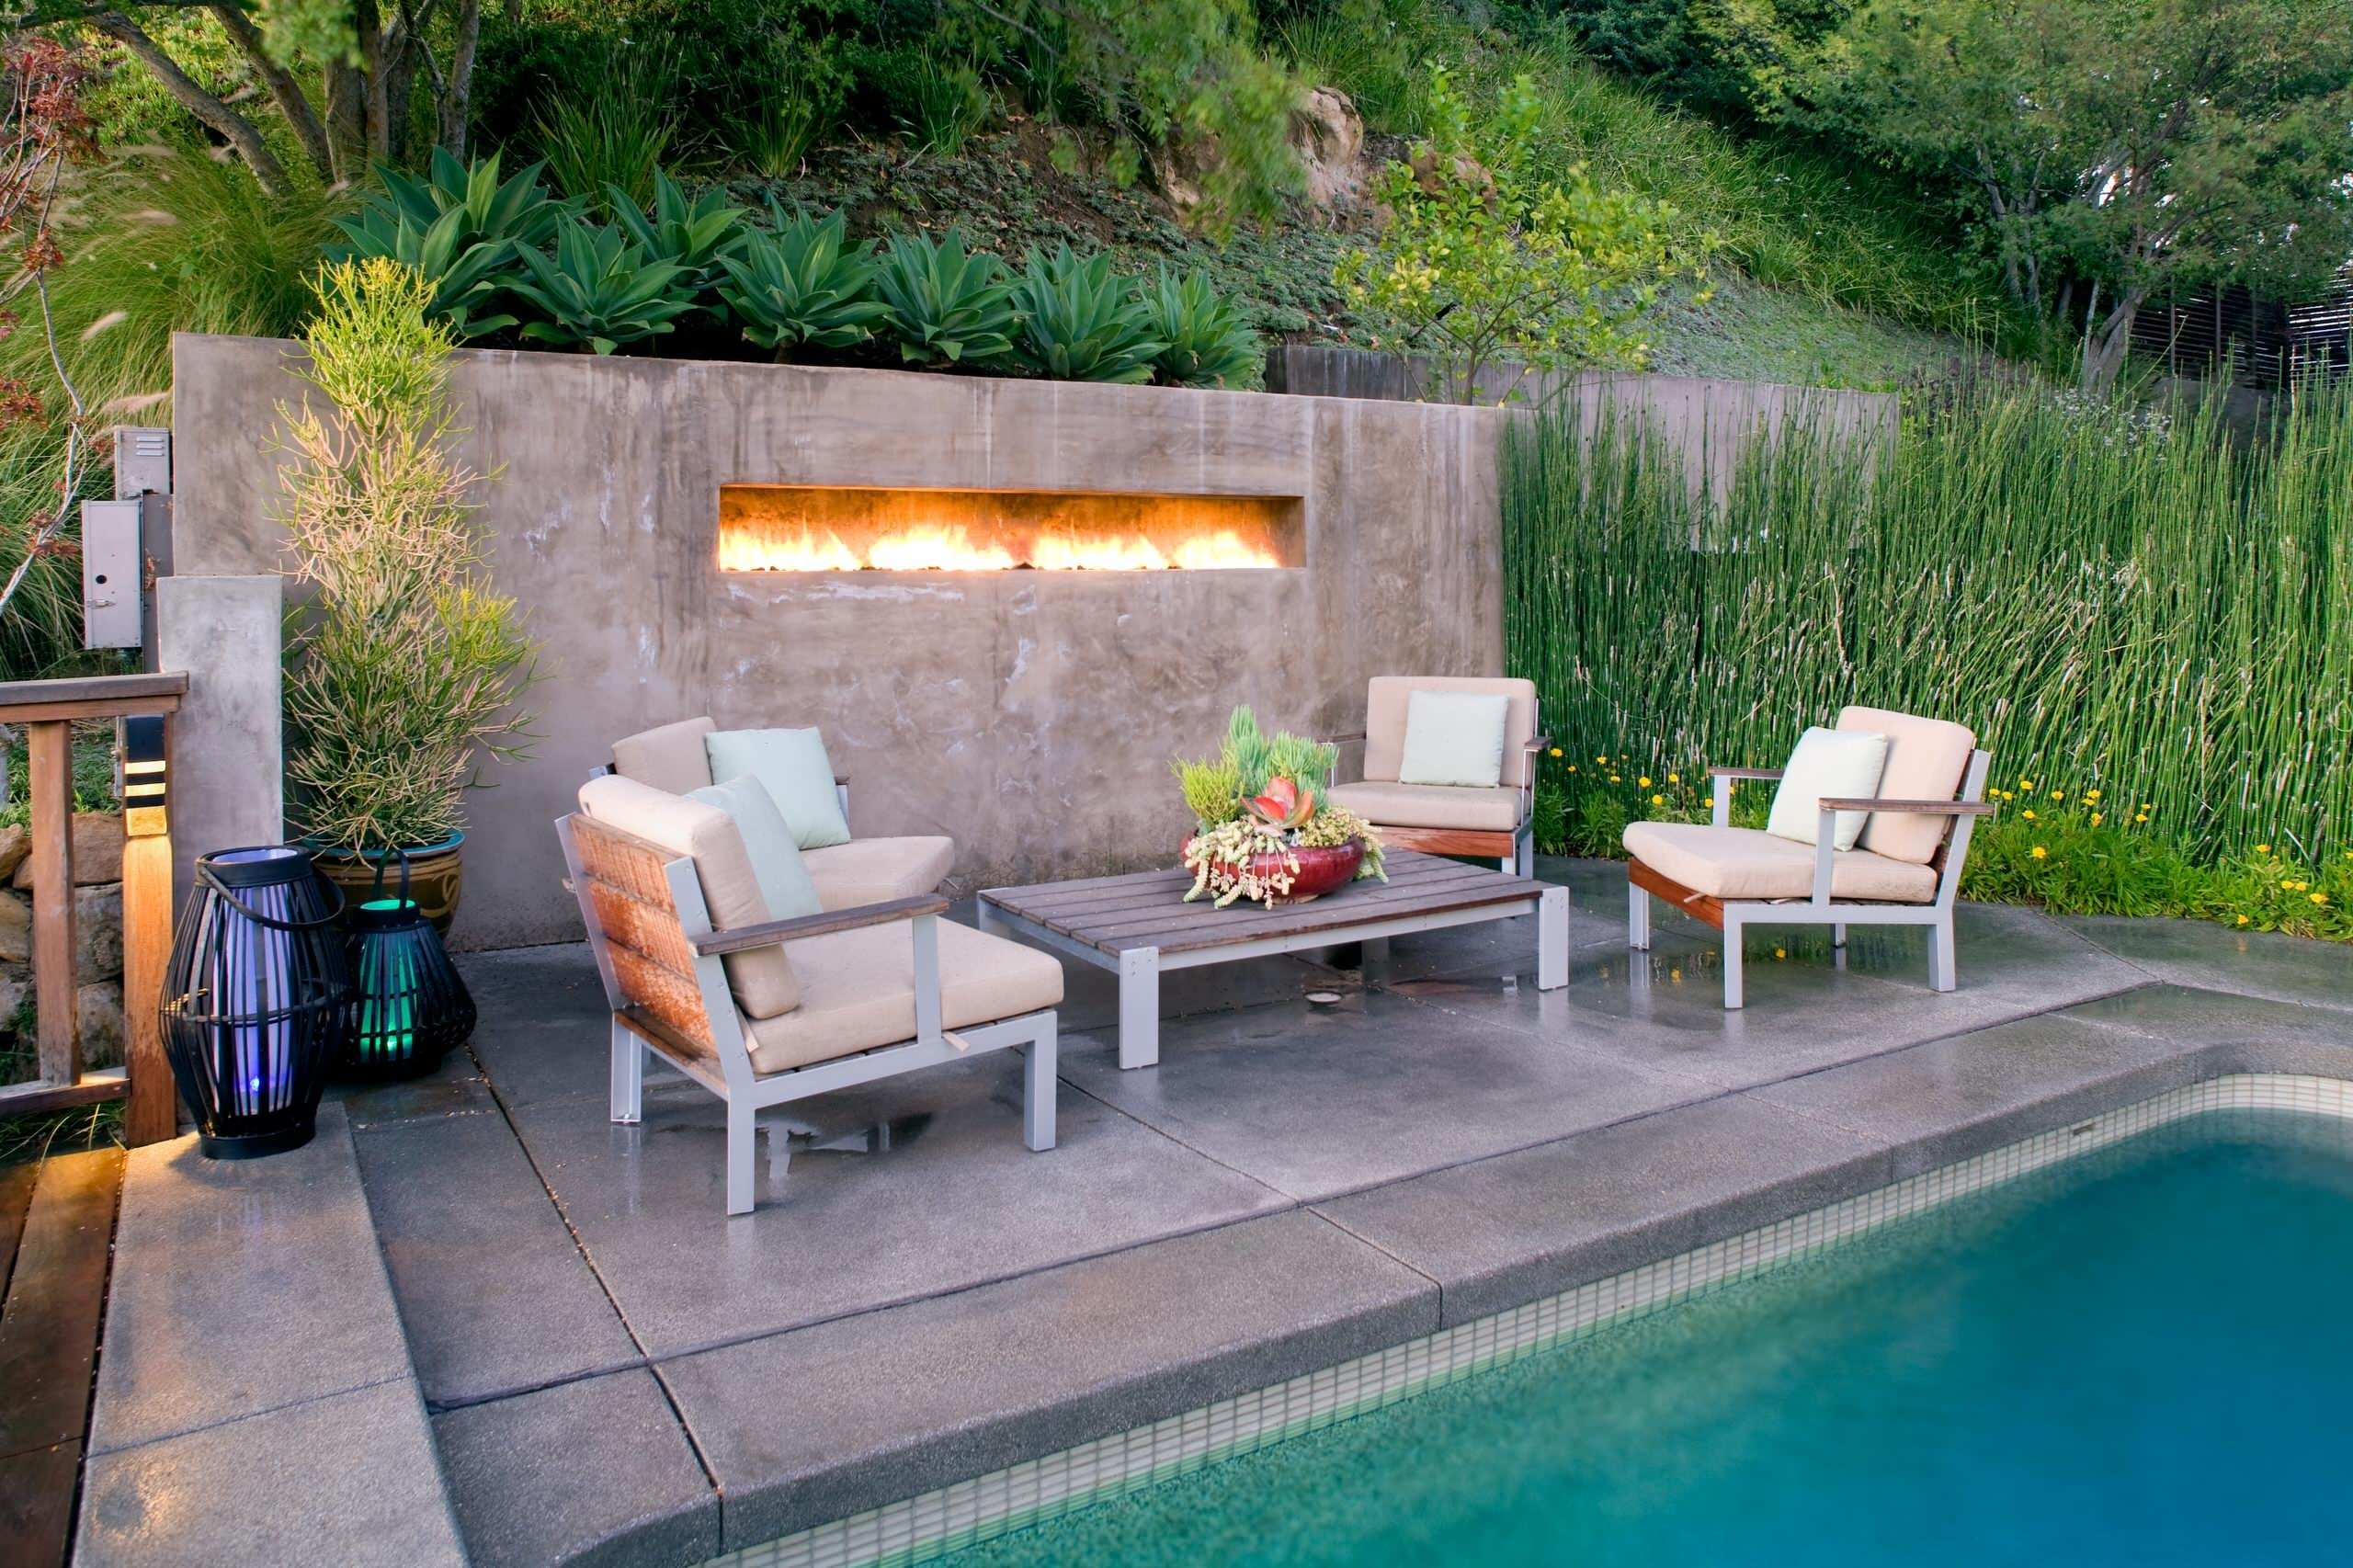 10 Ideal Do It Yourself Patio Ideas best patio ideas for design inspiration backyard plans with fire pit 2020